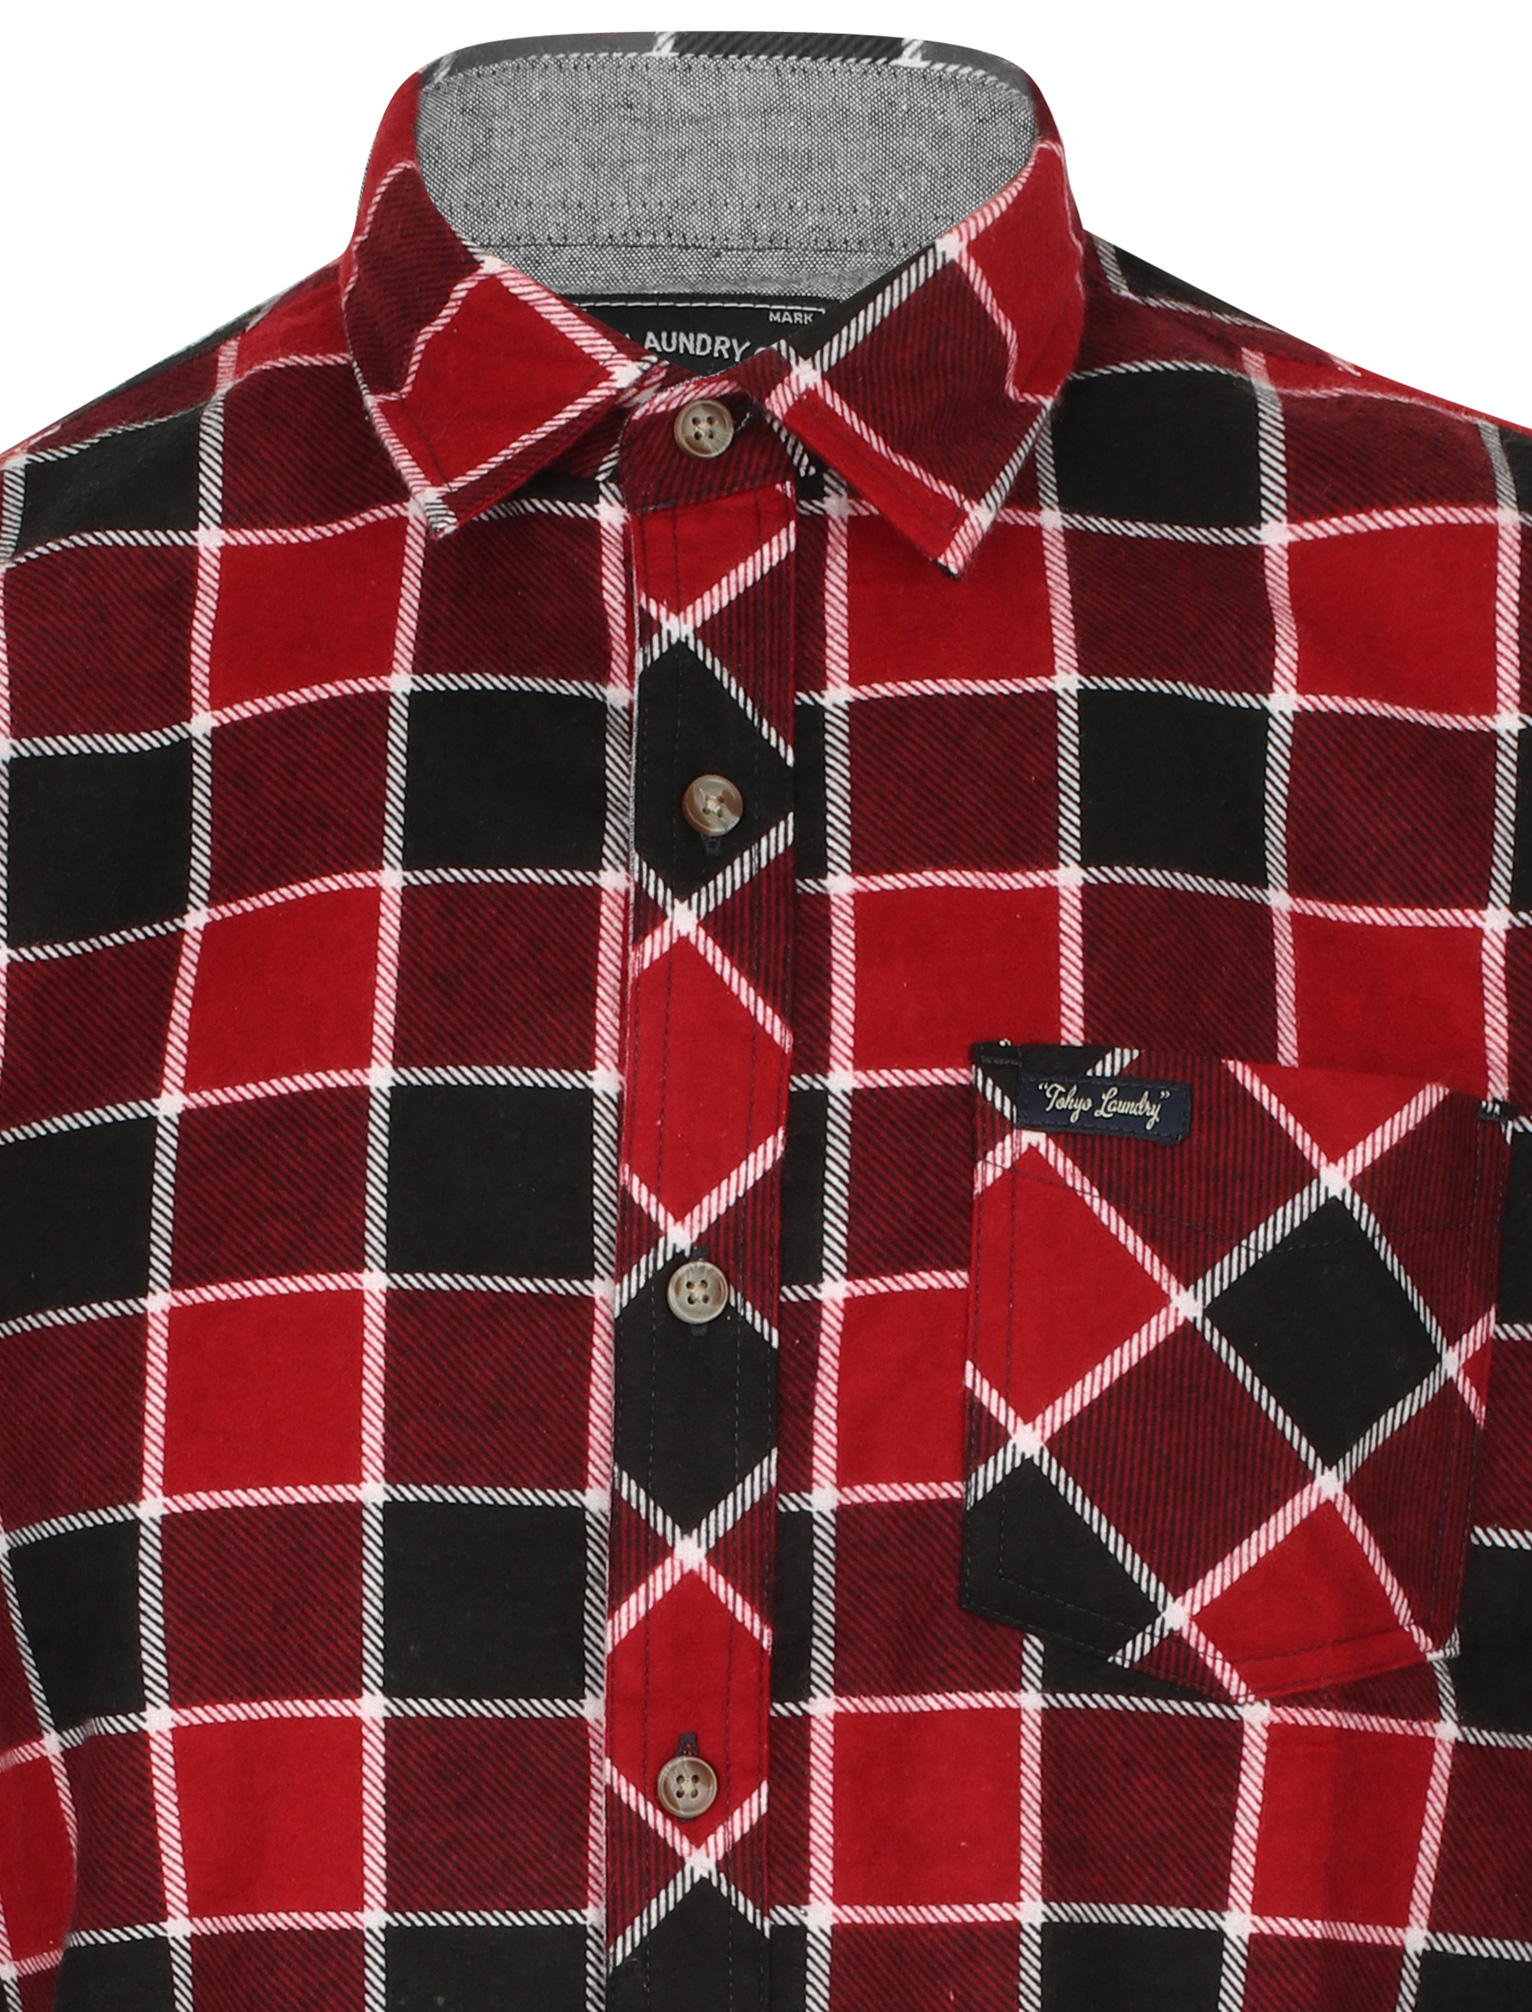 New-Mens-Tokyo-Laundry-Cotton-Long-Sleeve-Checked-Flannel-Shirt-Size-S-XL thumbnail 26